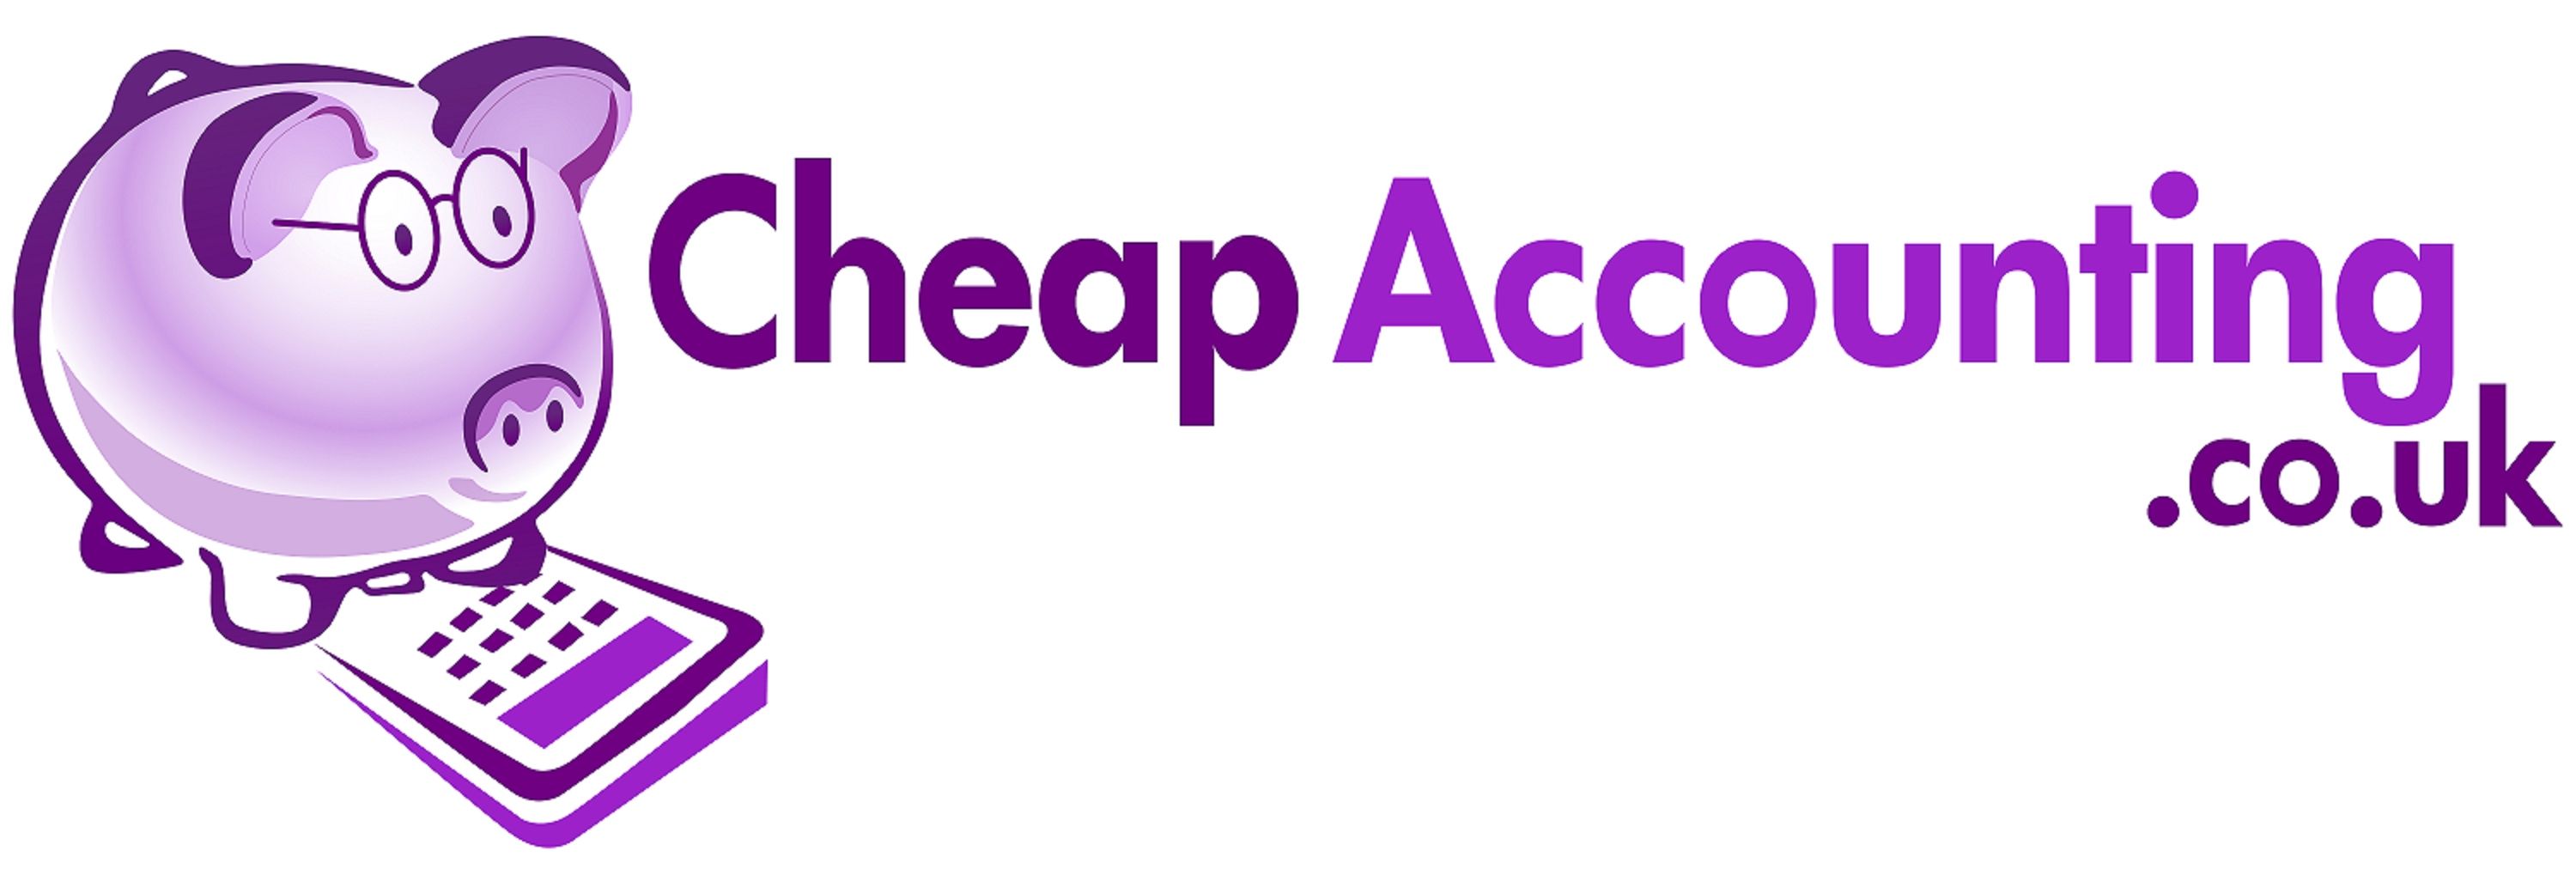 CheapAccounting.co.uk Logo